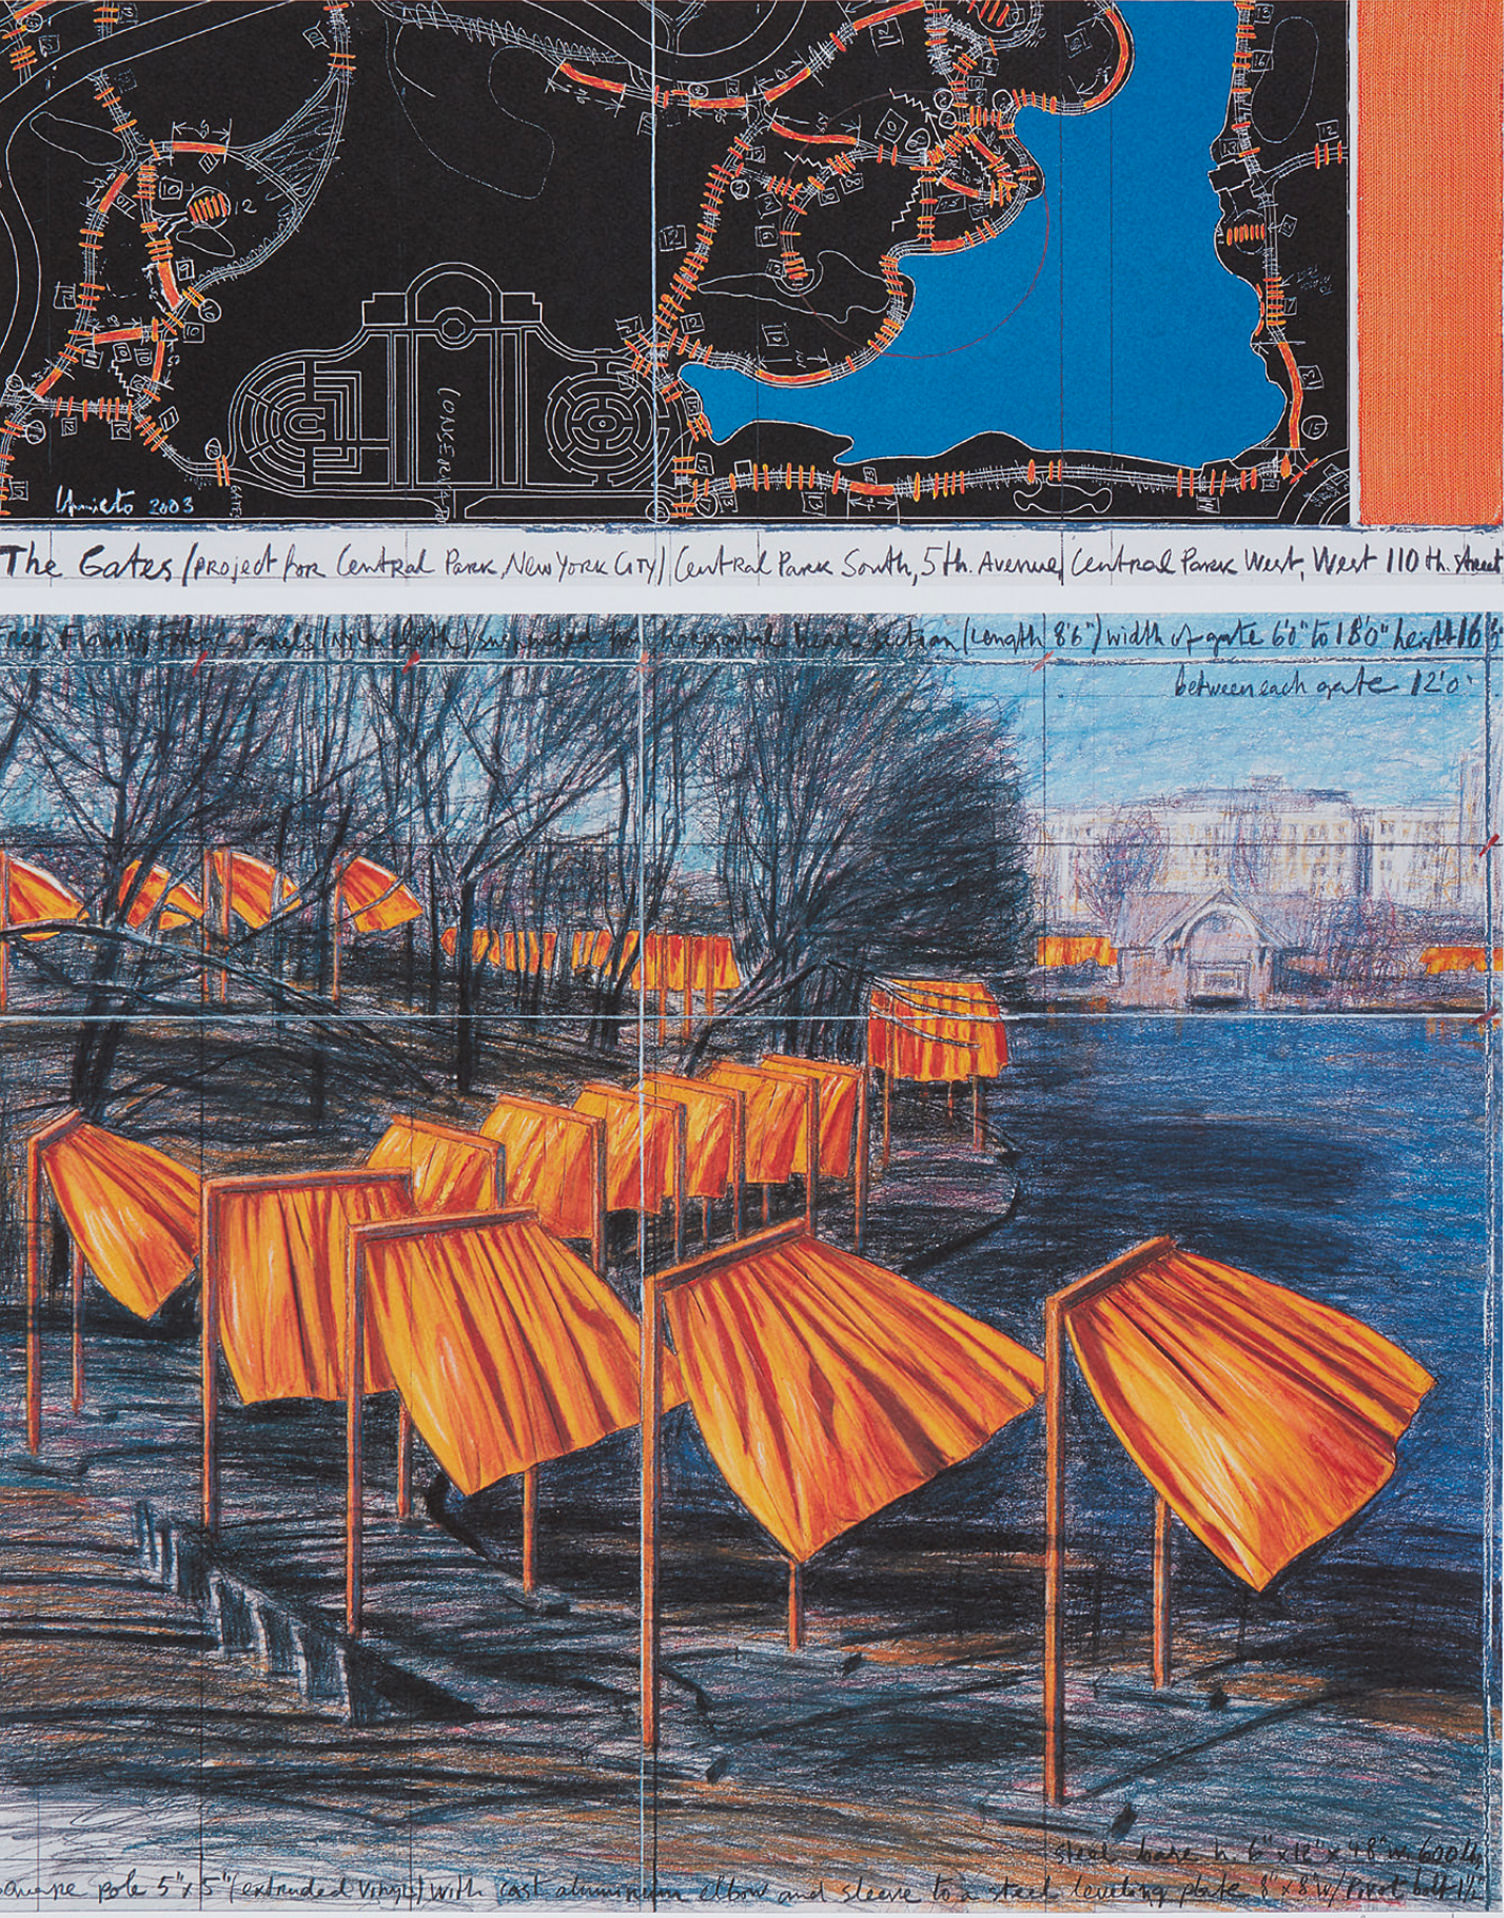 Christo. The Gates, Project for Central Park, VIII, New York City, 2003